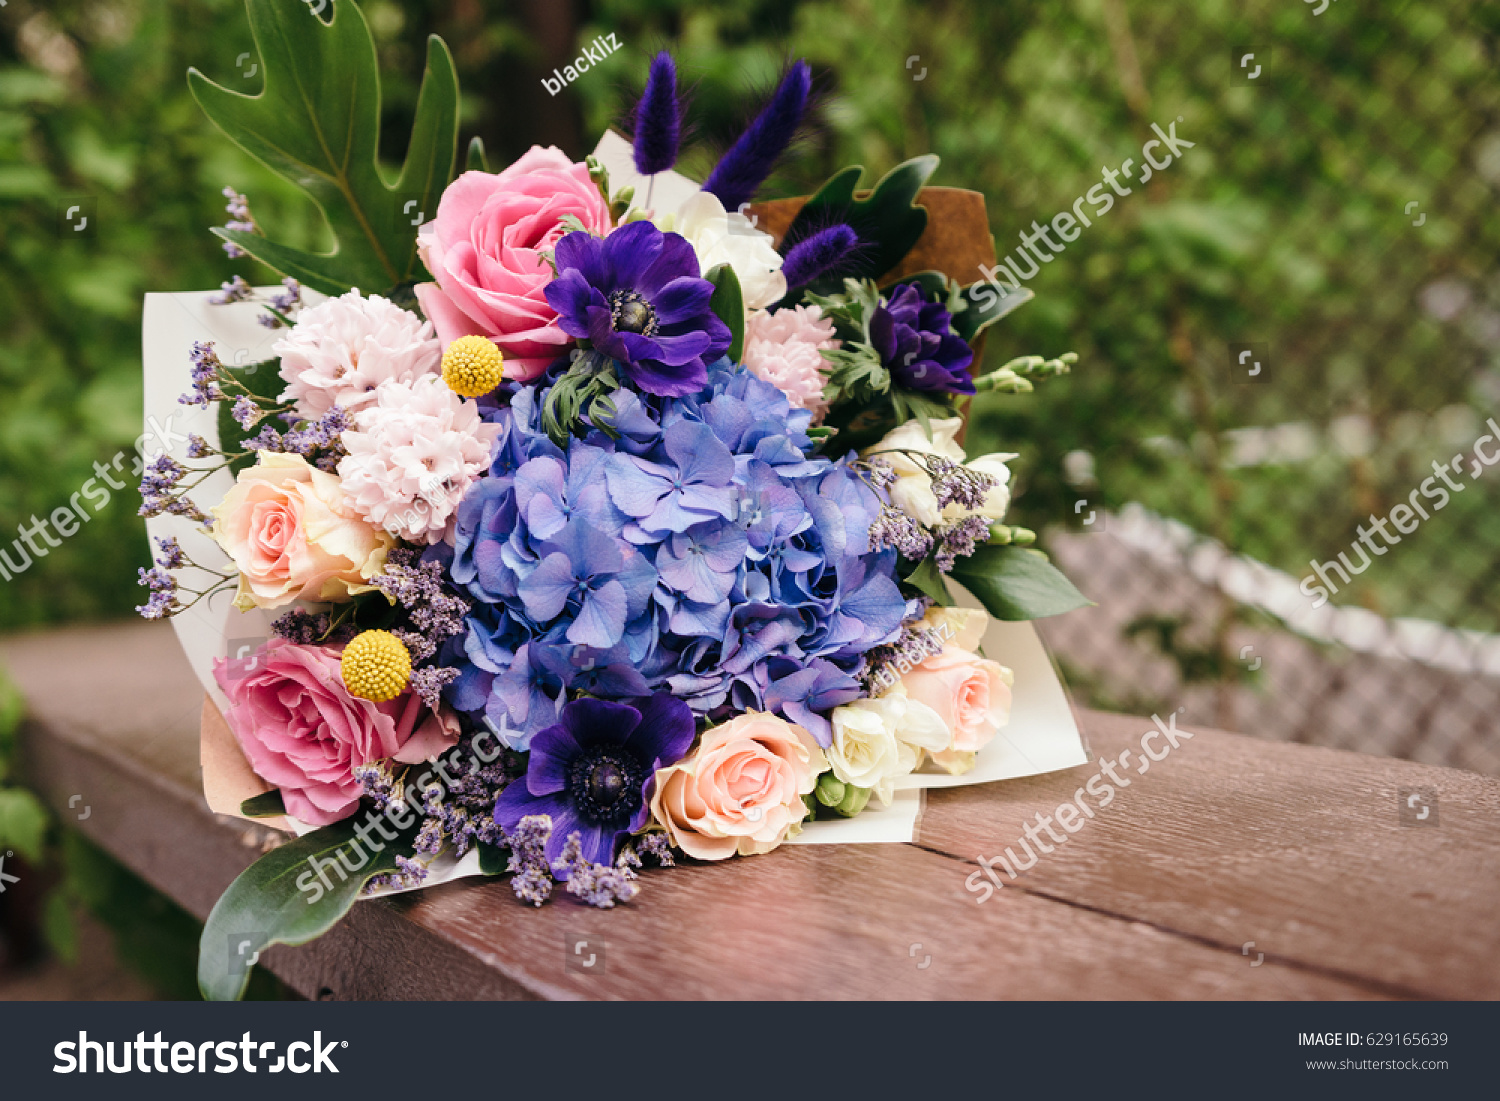 Blue And Pink Bouquet Of Flowers Wrapped In Paper Bunch Of Fresh